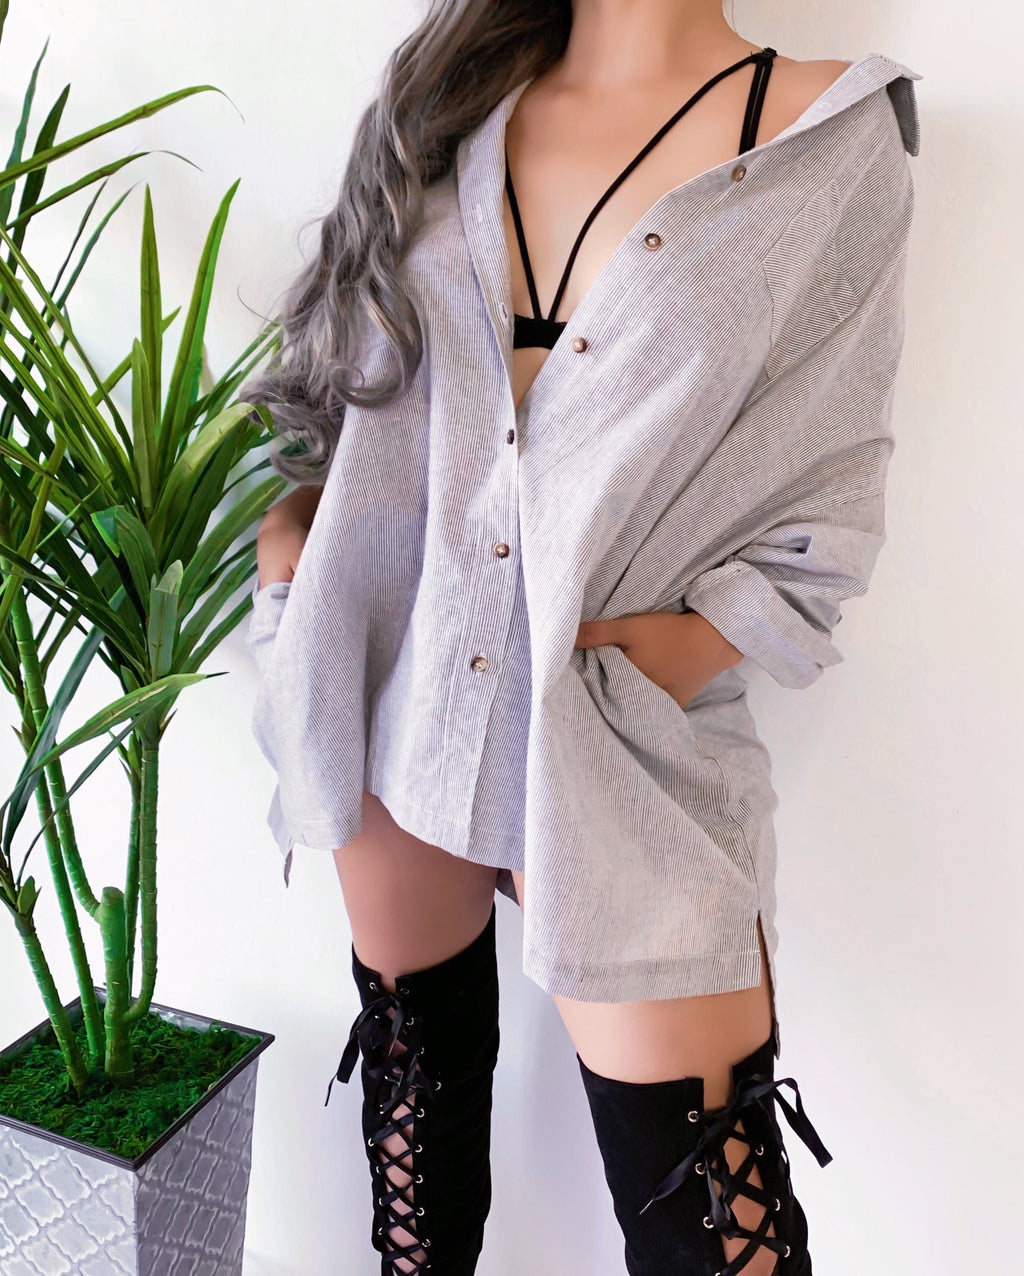 OVERNIGHT OVERSIZED BUTTON UP TOP/DRESS (GRAY)